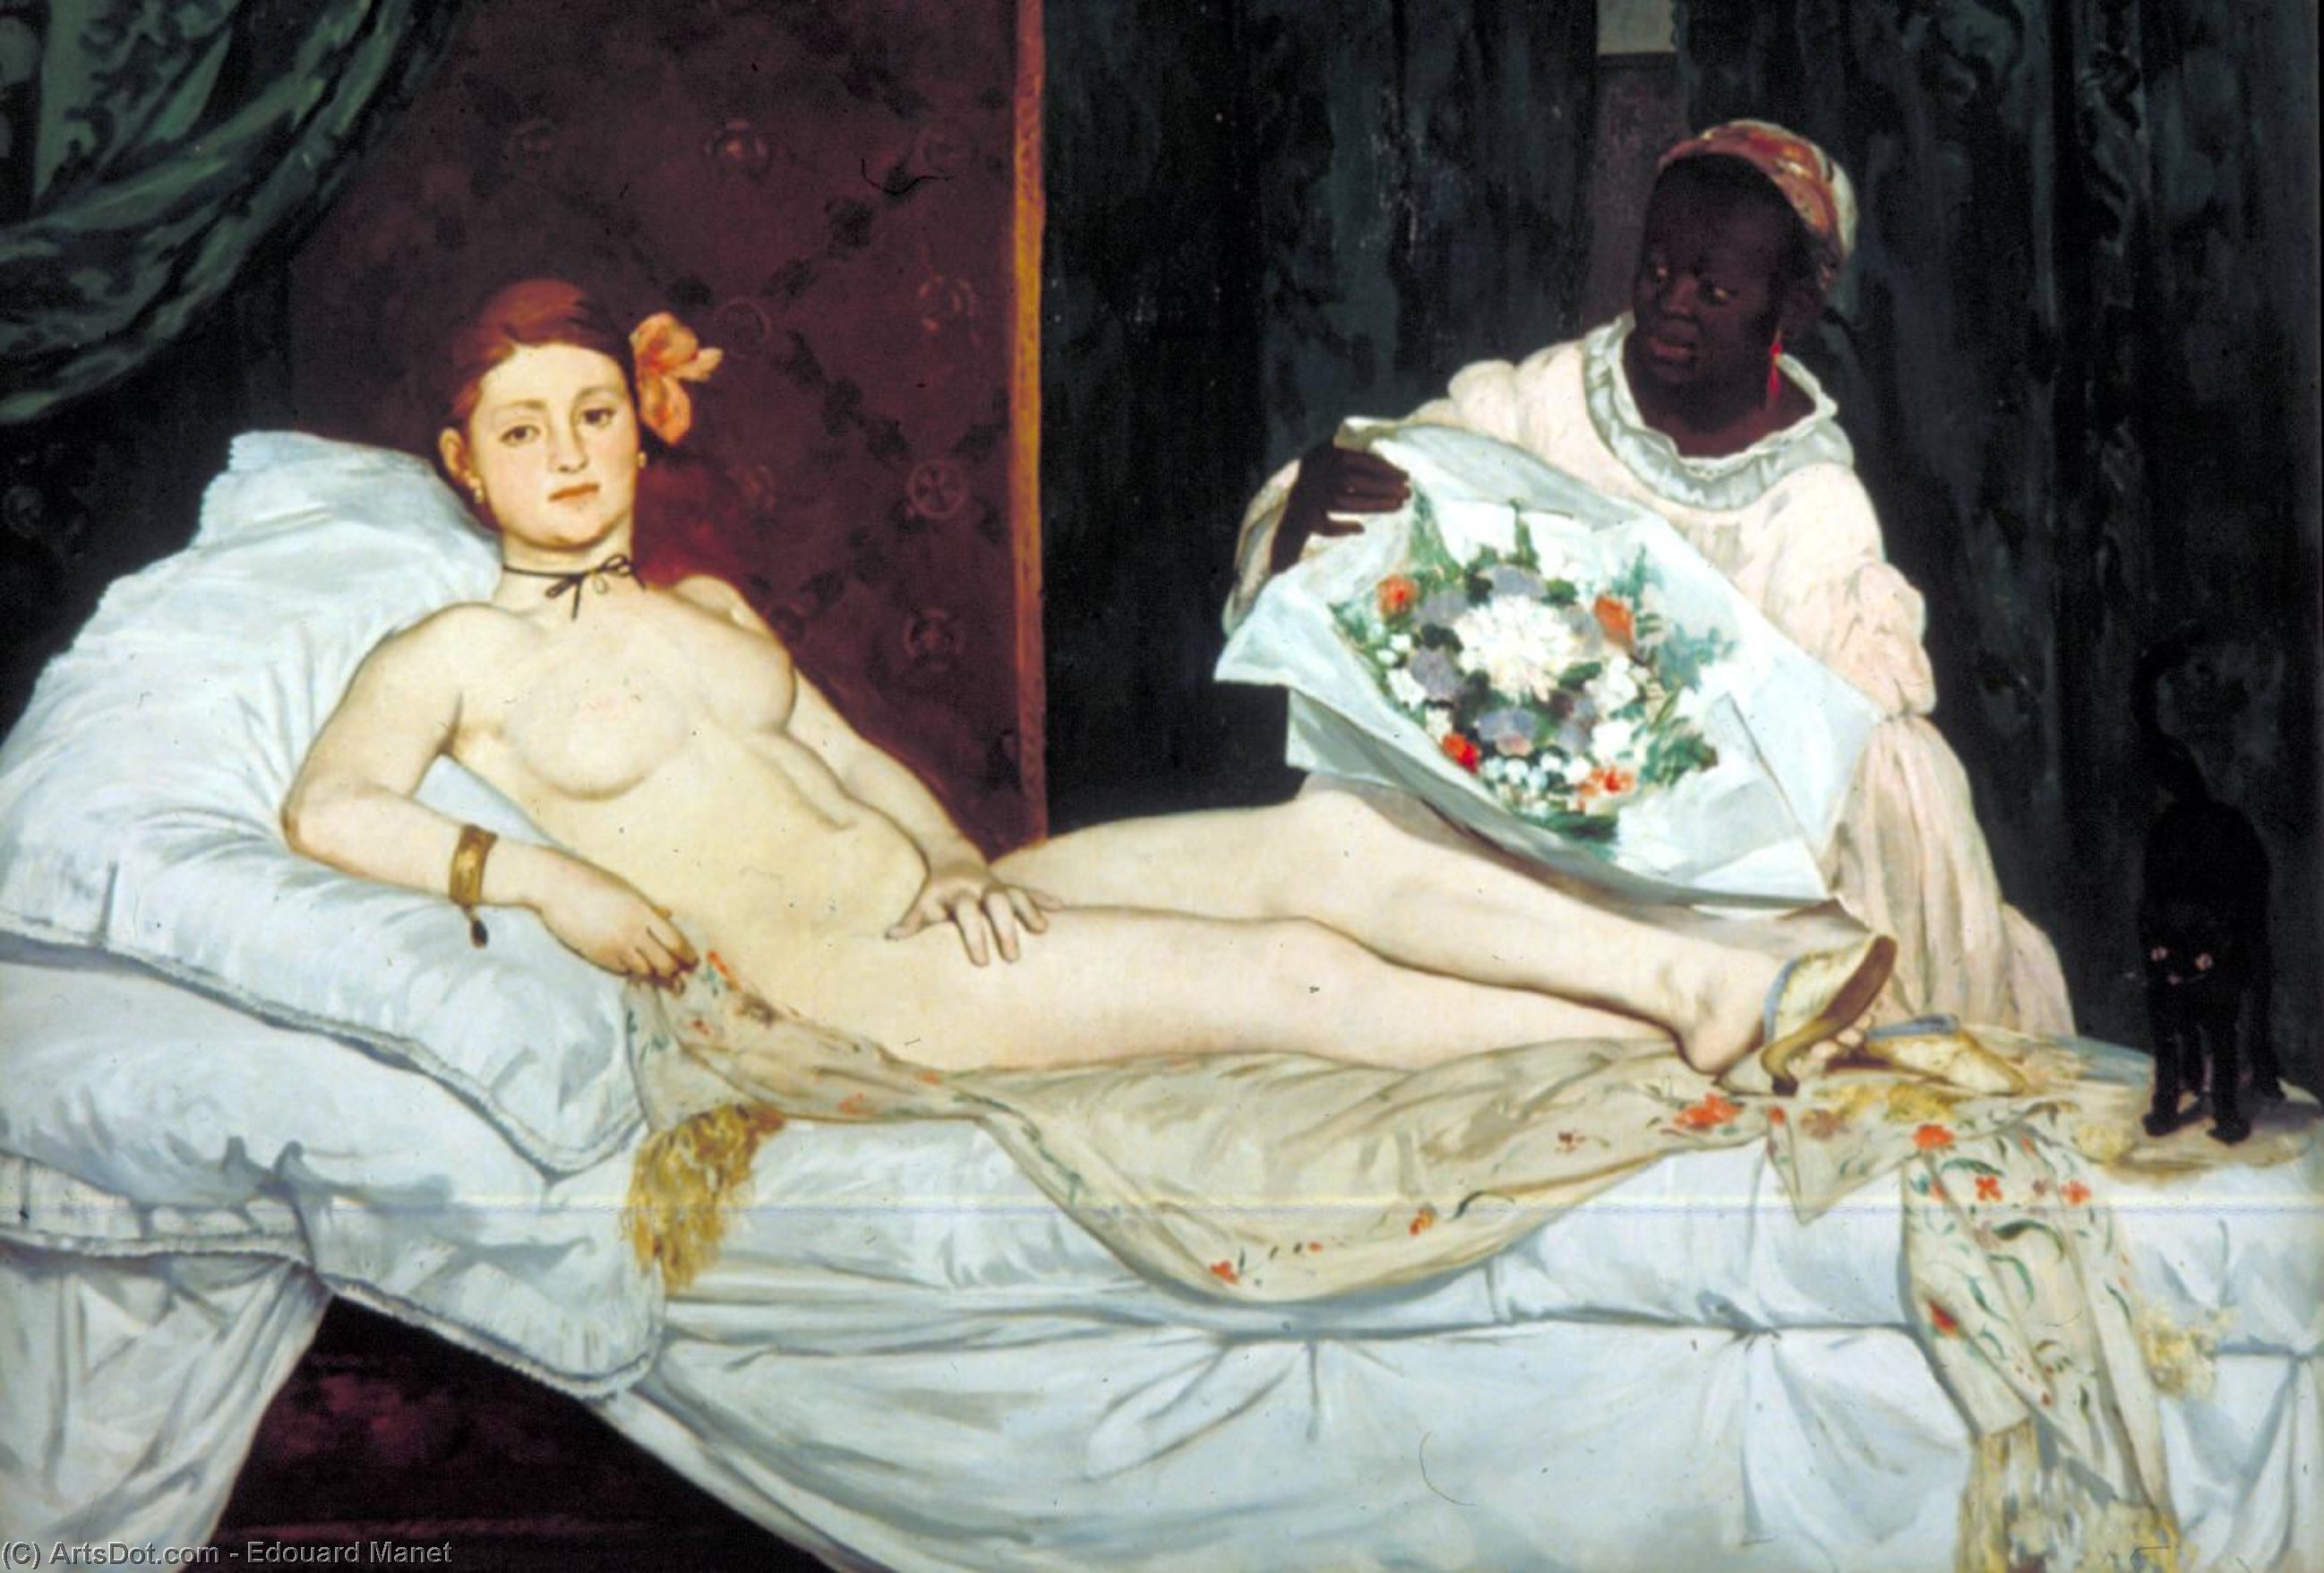 WikiOO.org - Encyclopedia of Fine Arts - Schilderen, Artwork Edouard Manet - Olympia, Musee d'Orsay, Paris